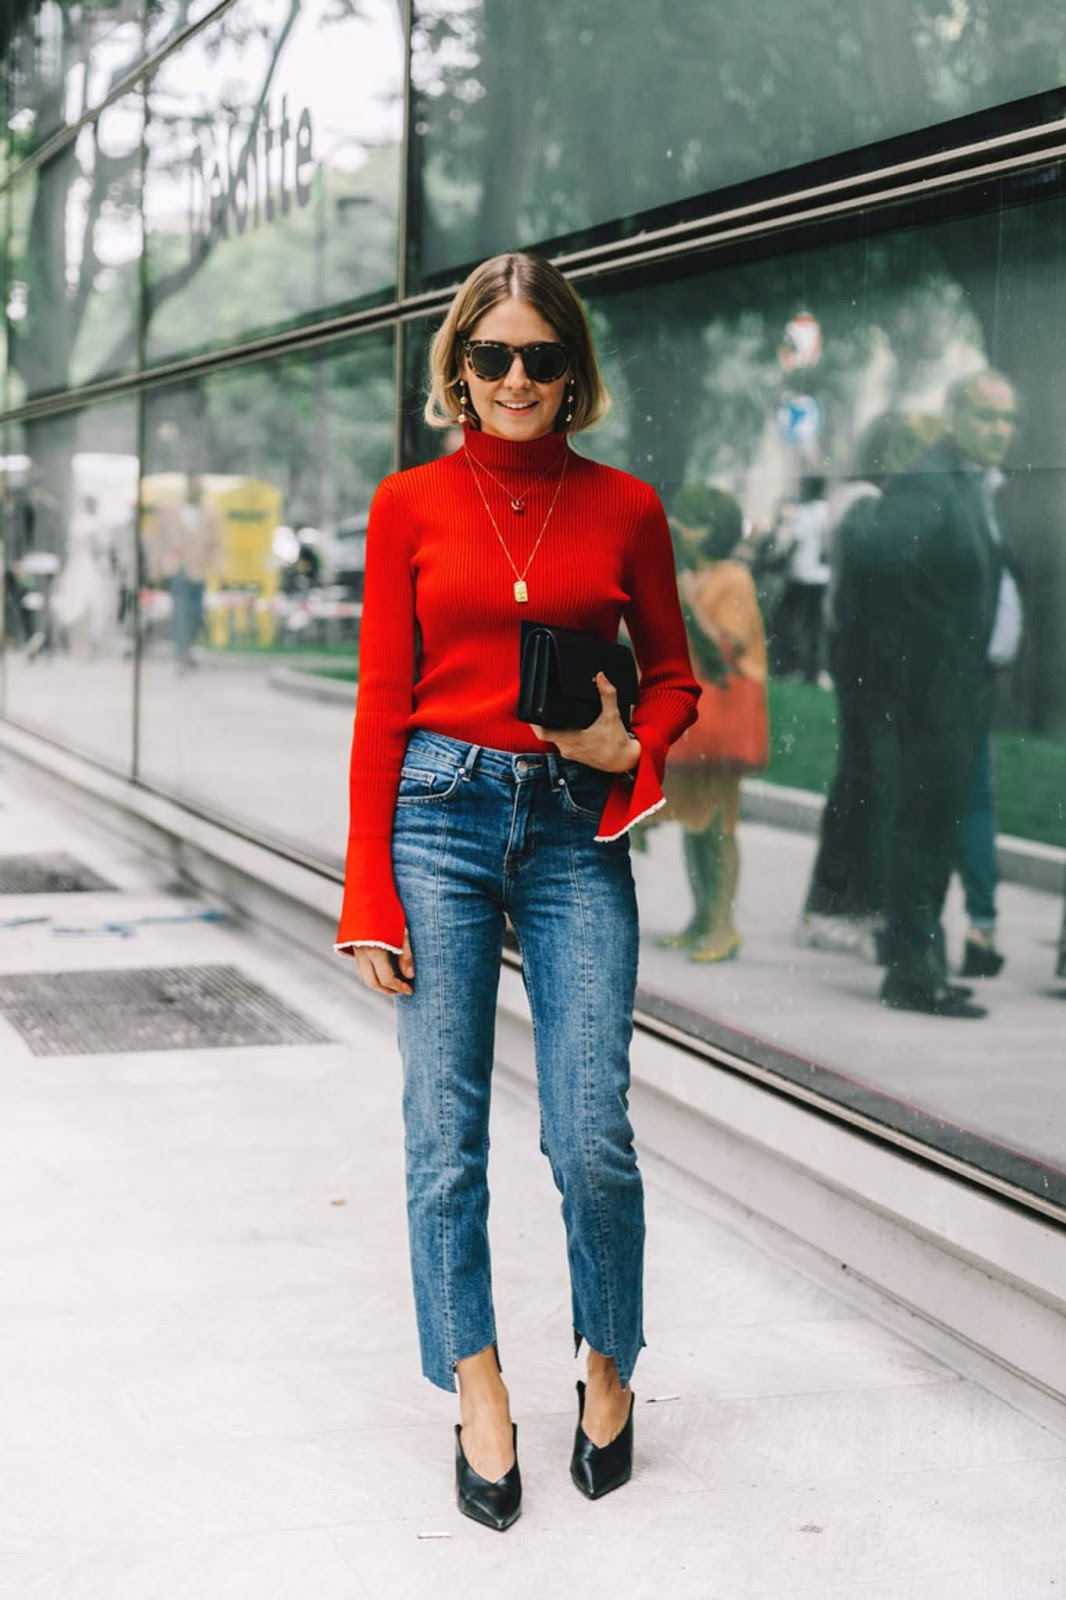 25 Stylish Bell-Sleeve Sweaters to Shop Now — Street Style Outfit Idea With a Red Flare Sleeve Sweater and Jeans